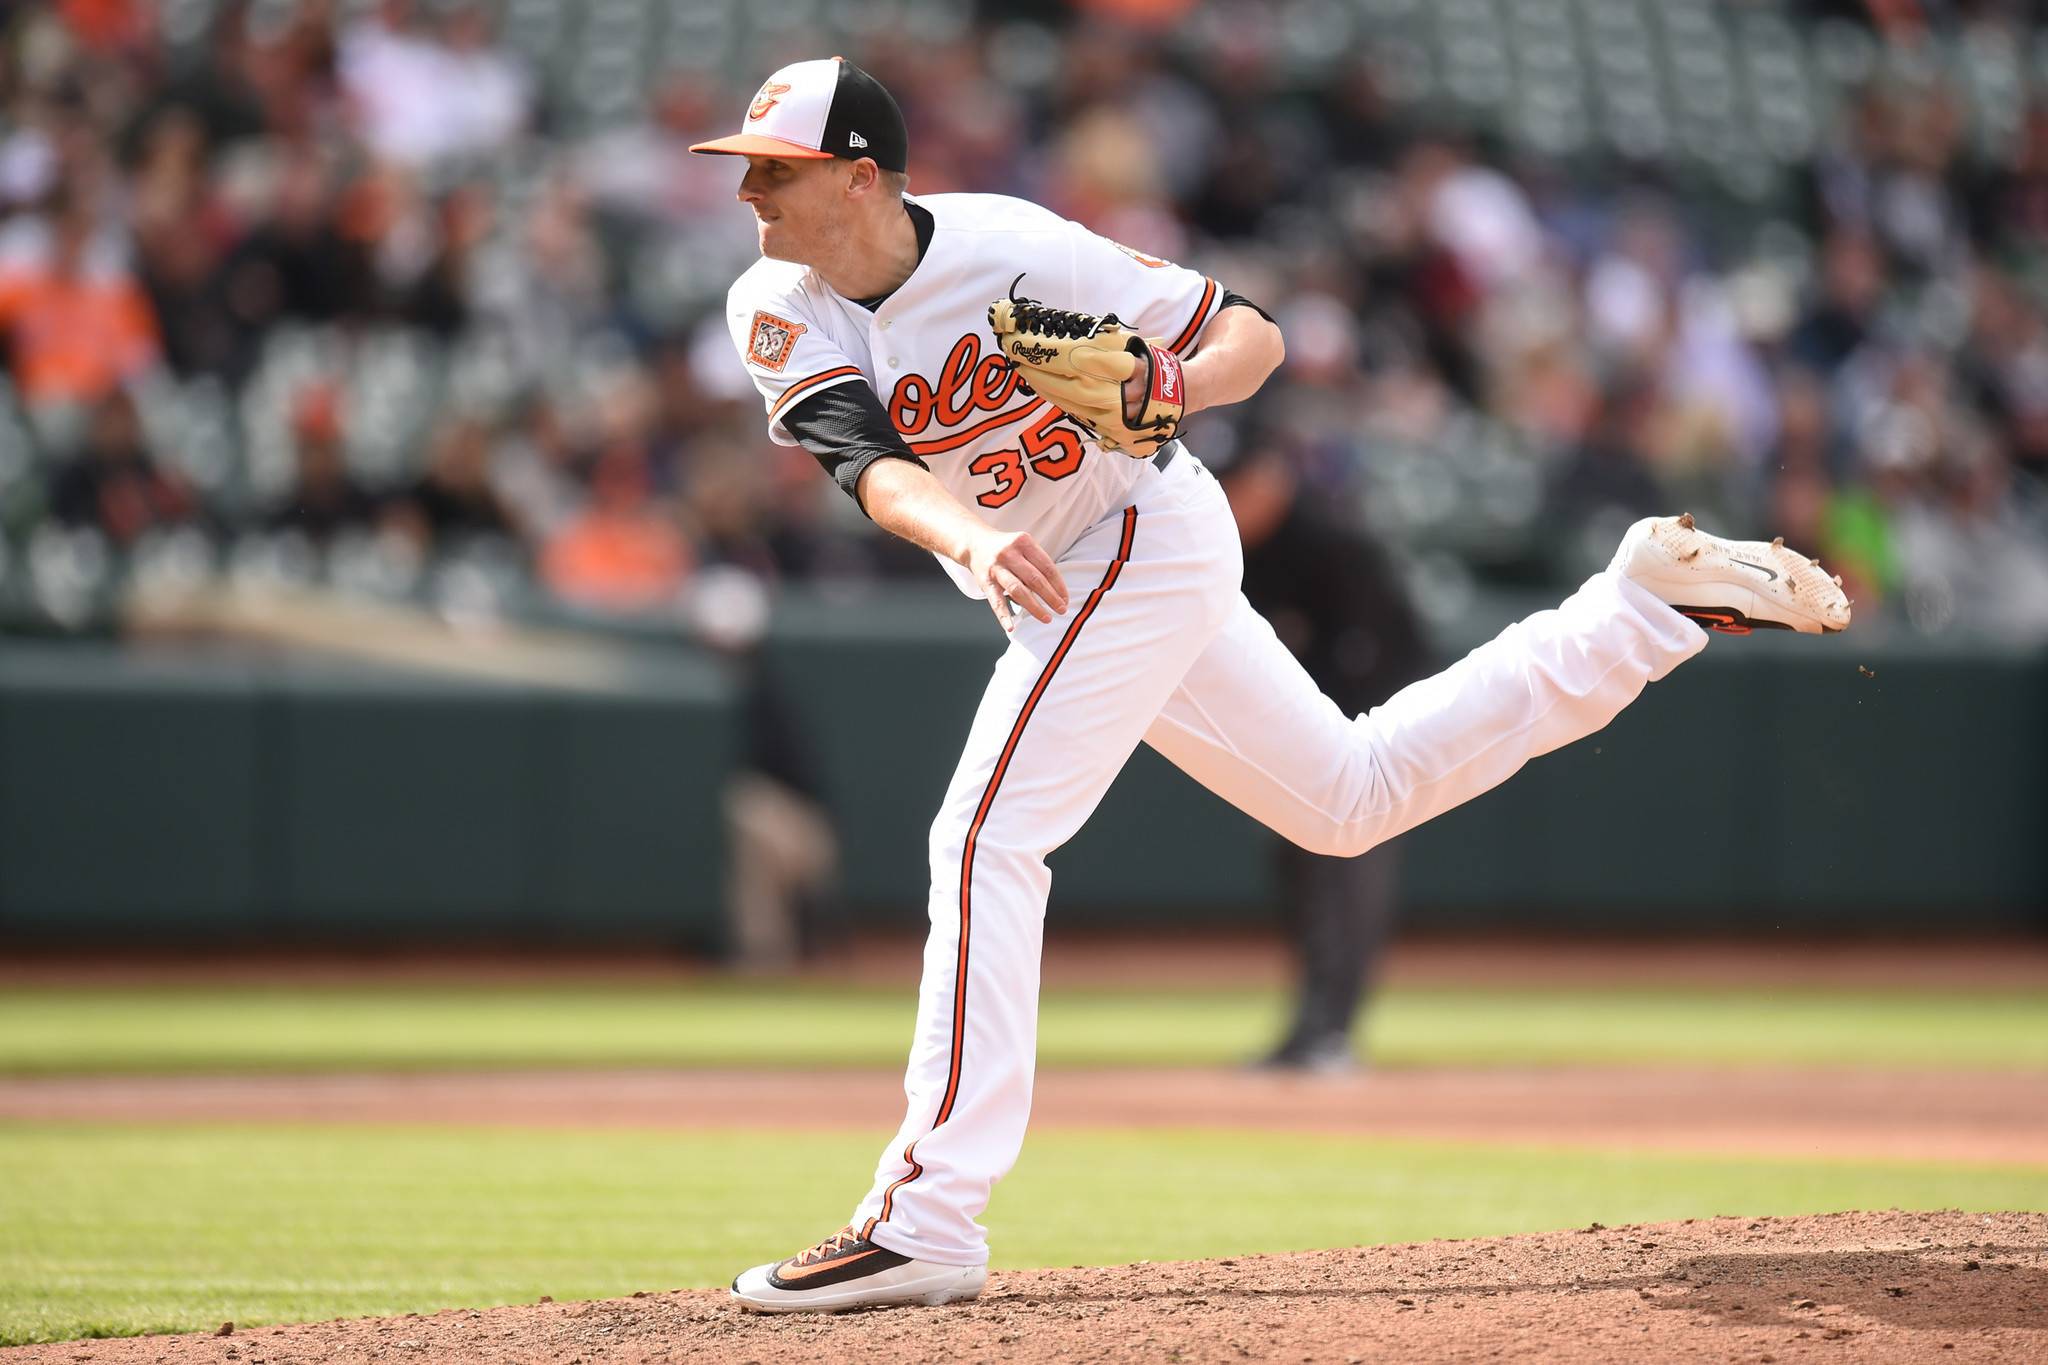 Bal-orioles-brad-brach-i-d-be-lying-if-i-said-the-confidence-wasn-t-a-little-shaken-there-for-a-little-b-20170520